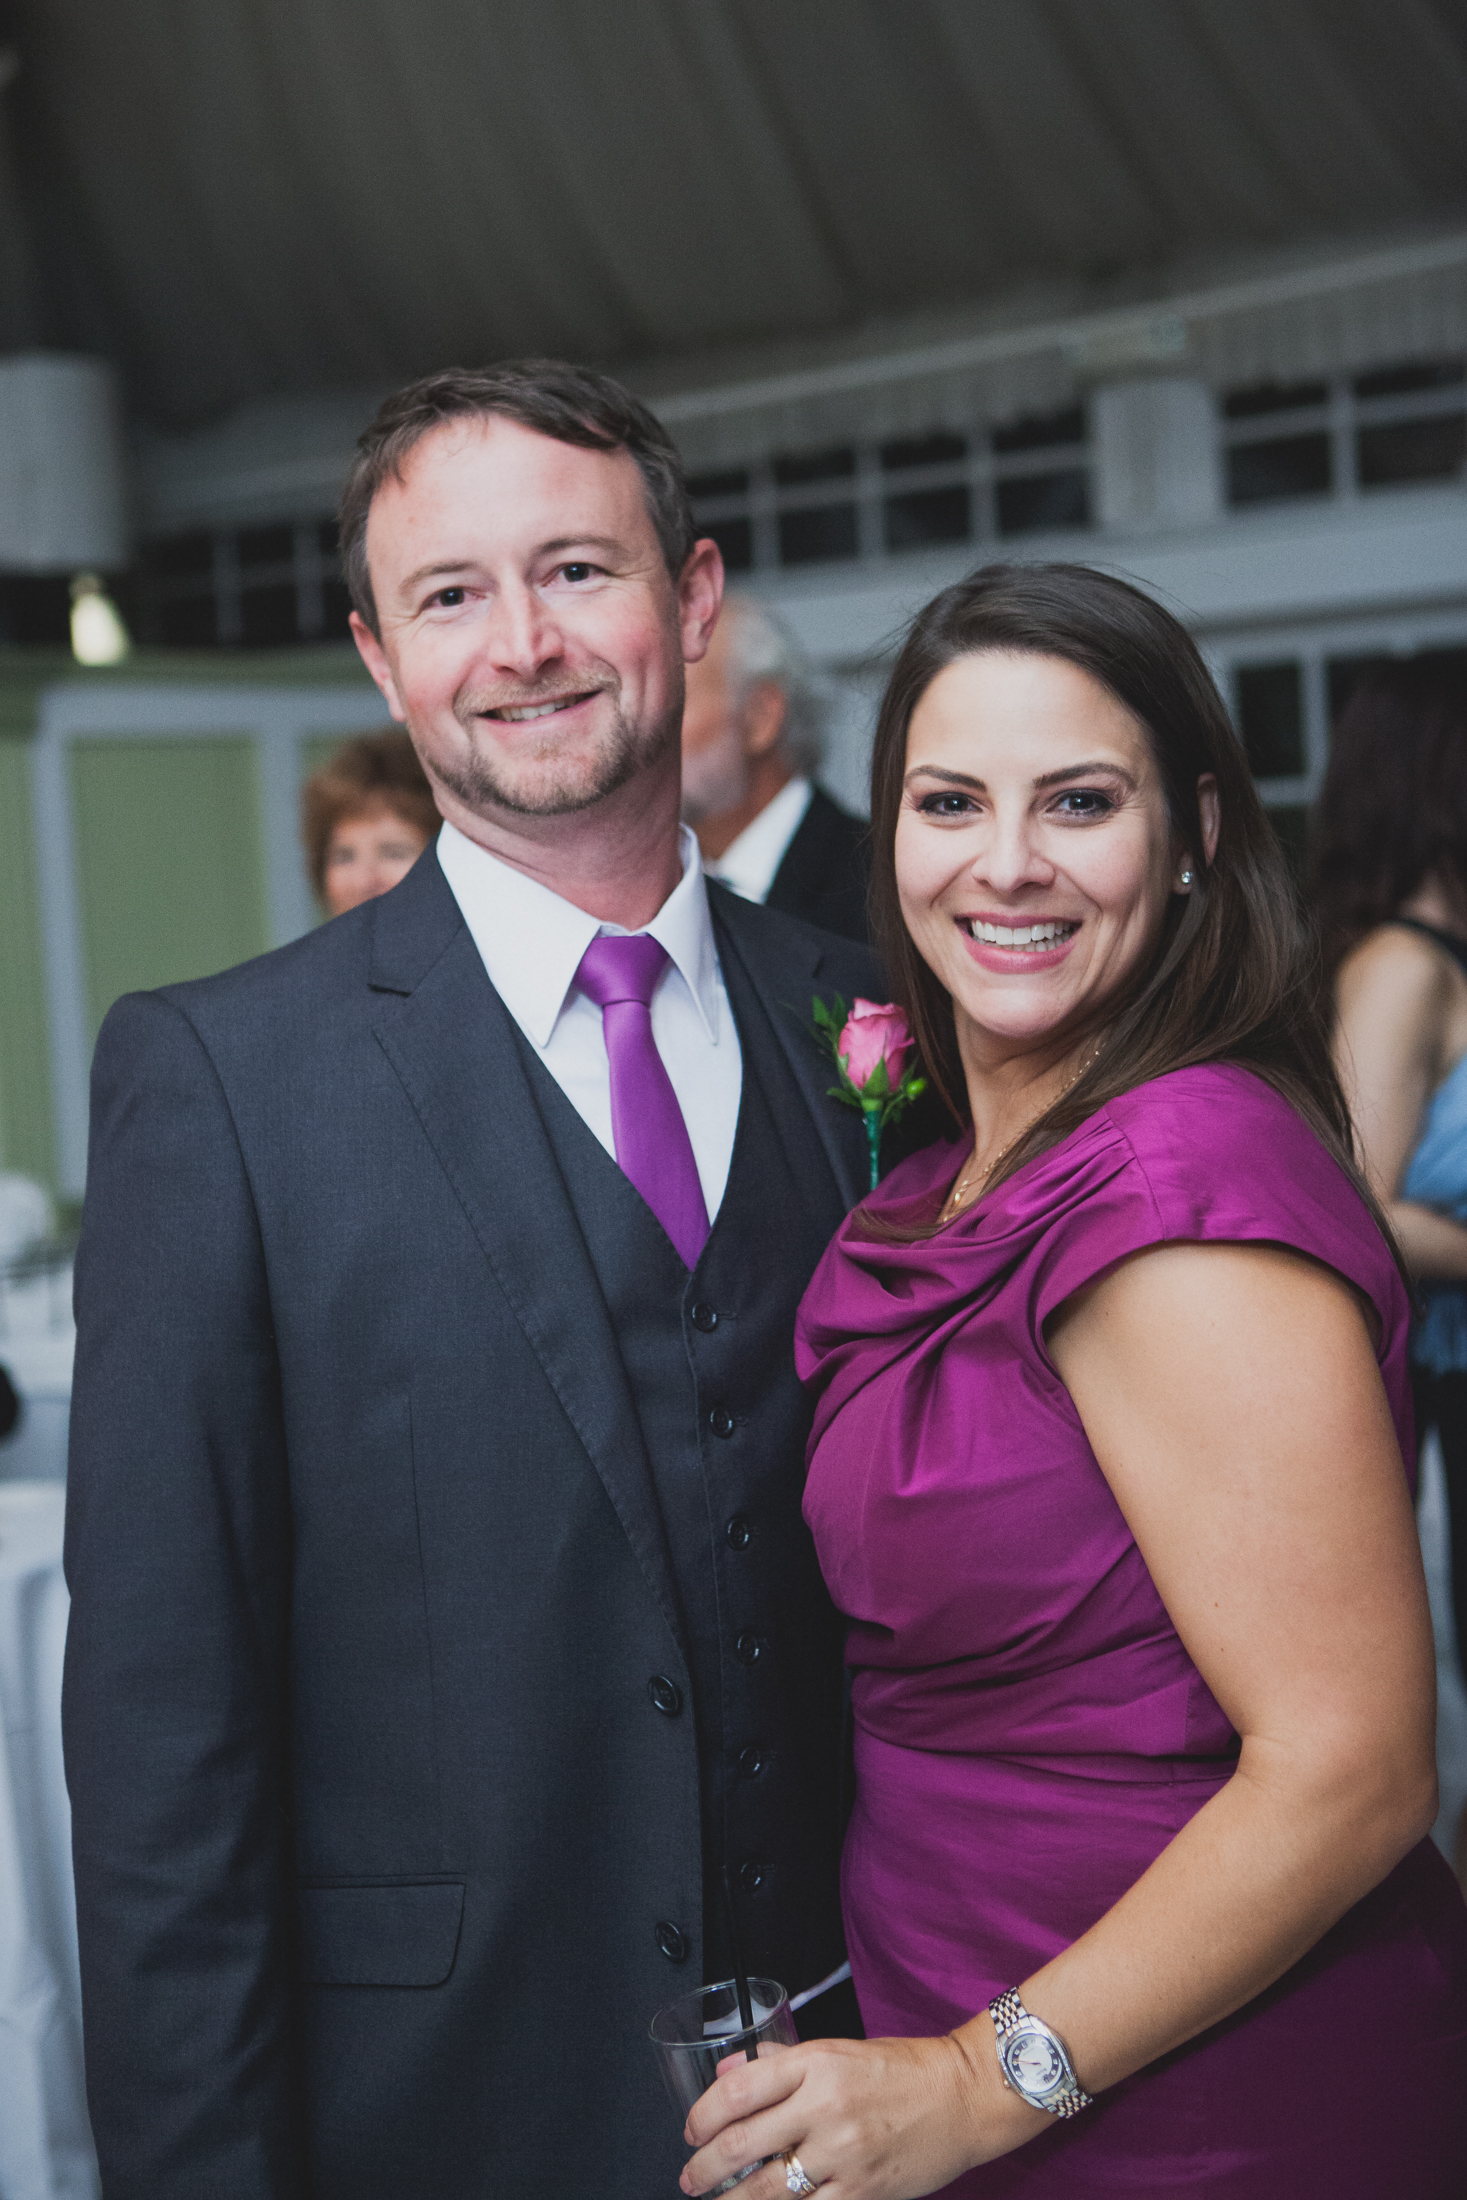 laura_and_mike-787.jpg